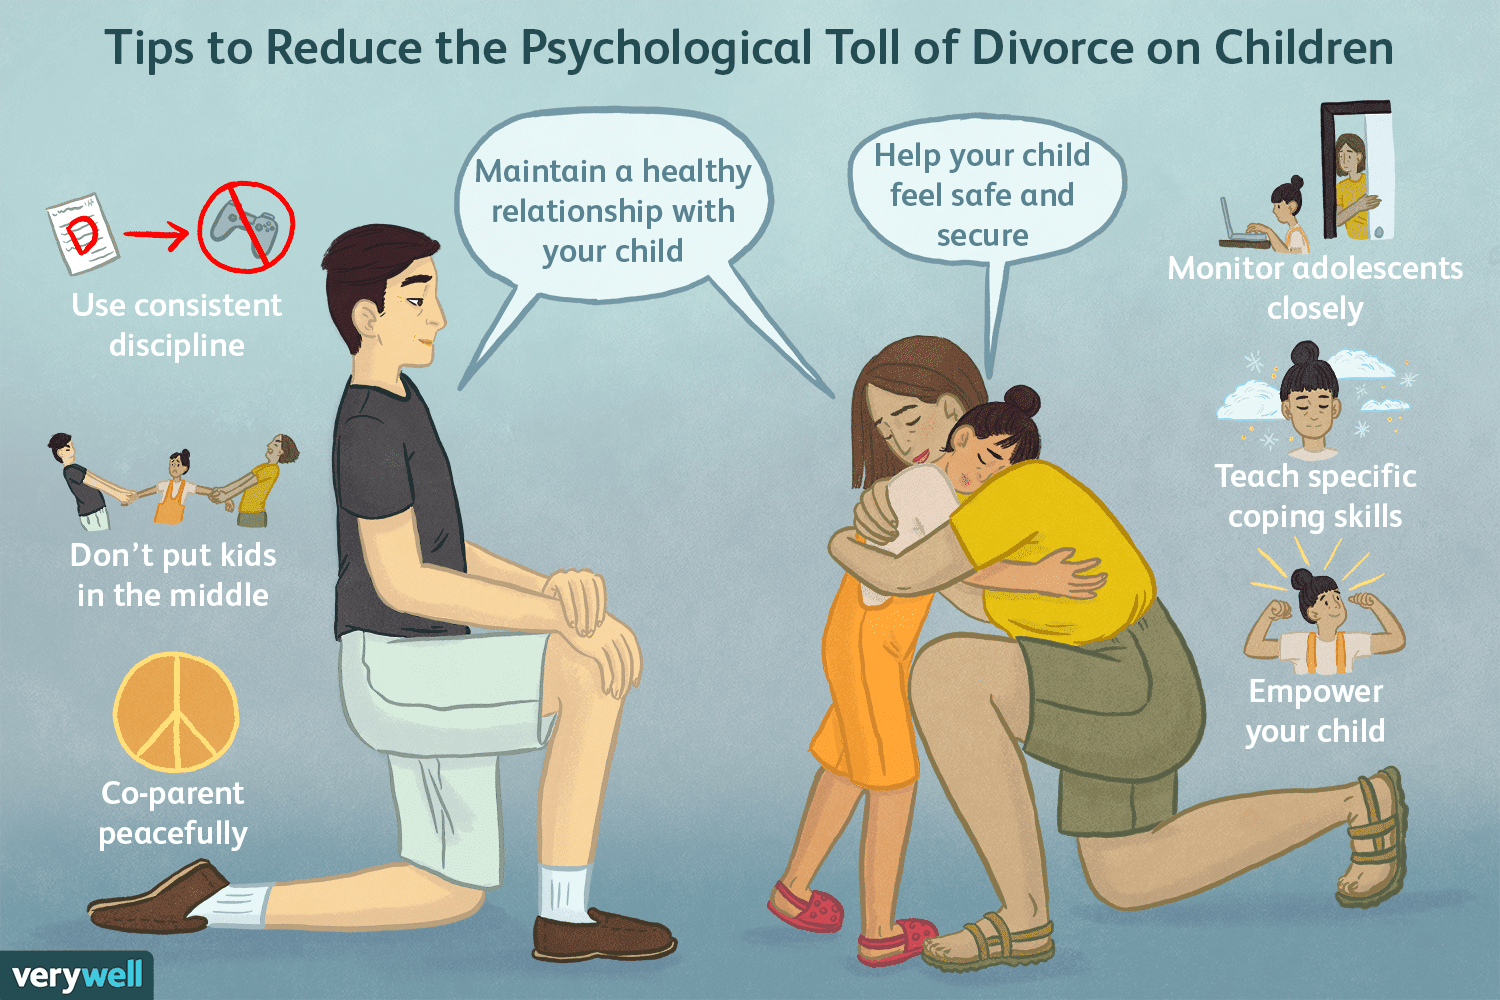 Birth Date May Influence Childs Risk >> The Psychological Effects Of Divorce On Kids